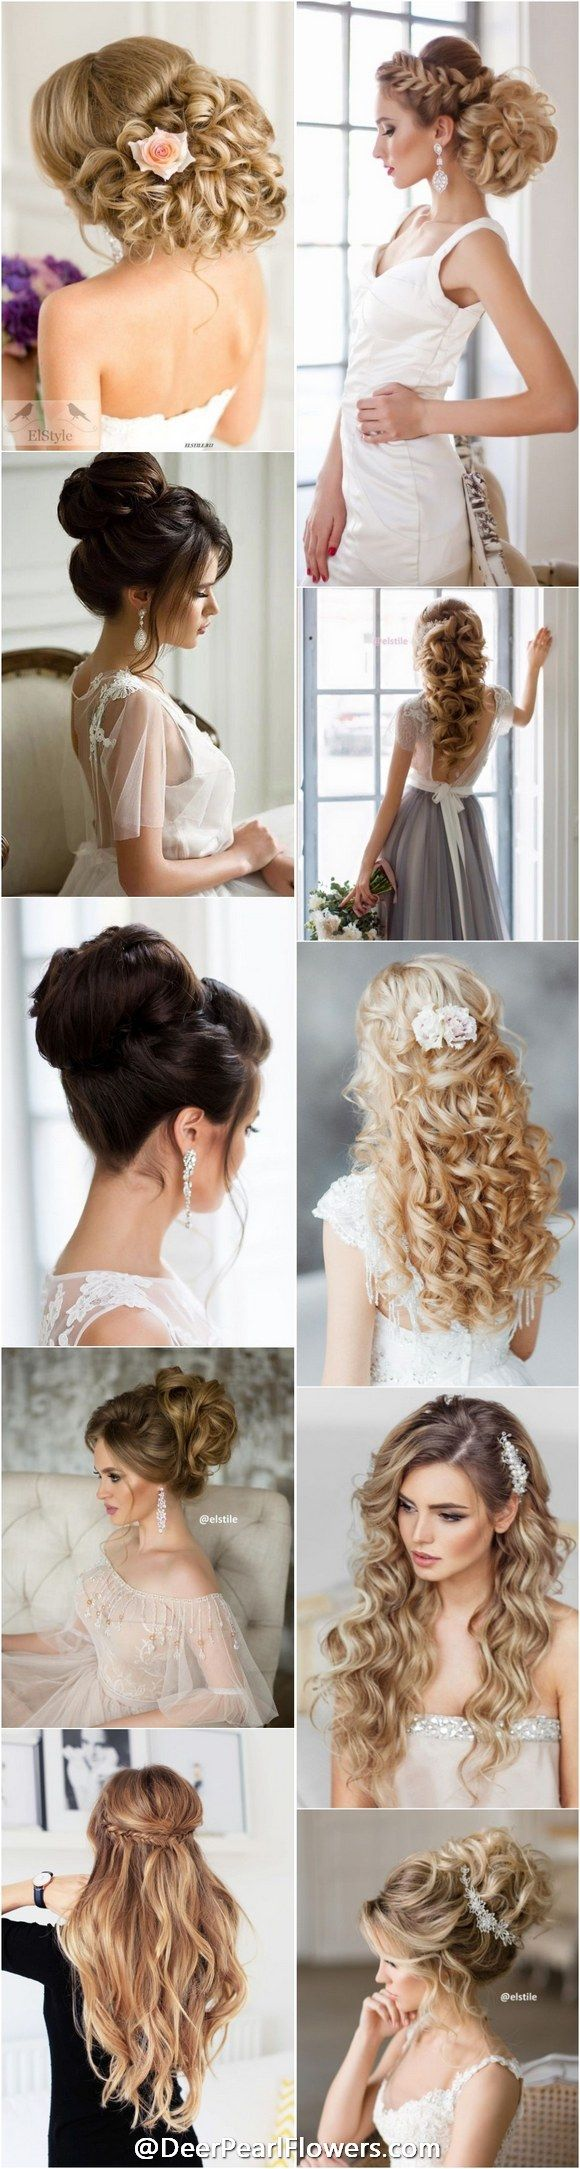 Long Wedding Hairstyles Best Instagram